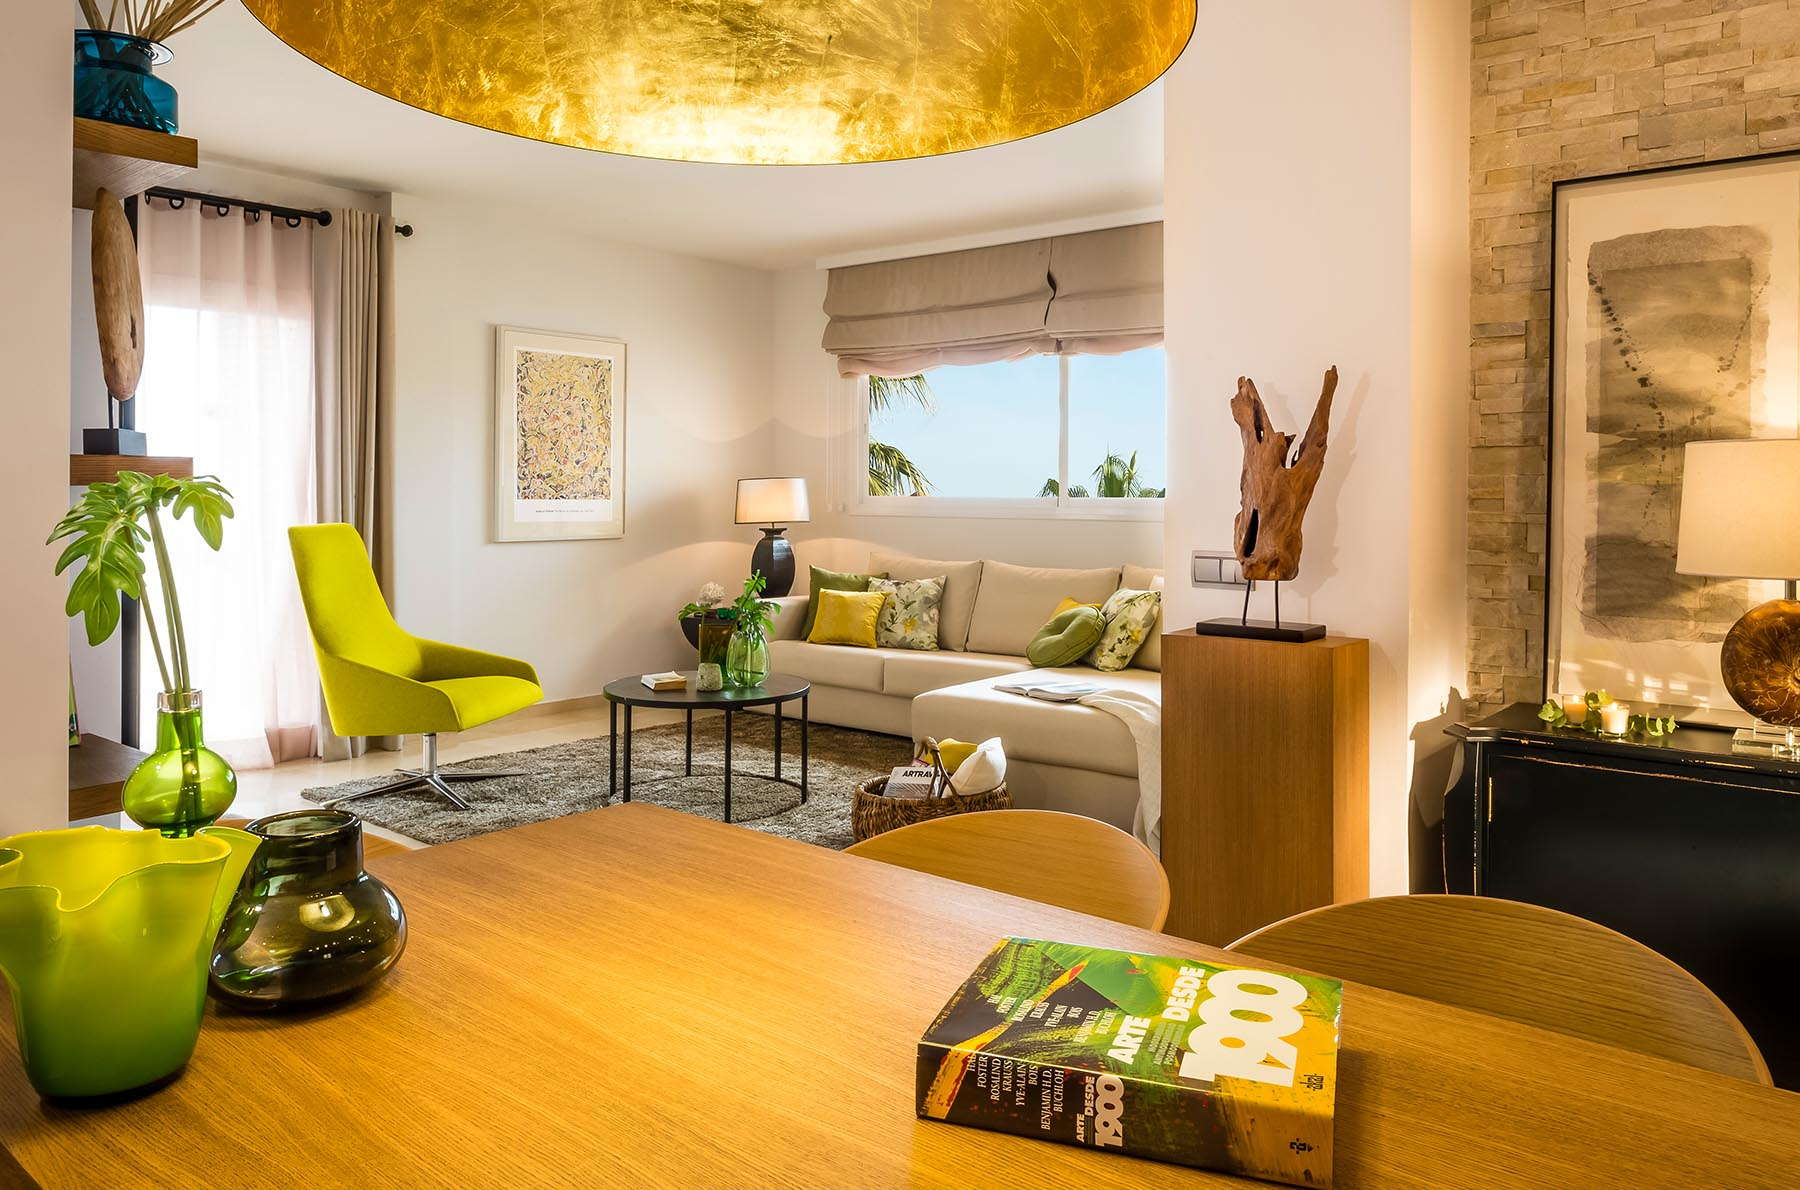 Hotels In San Diego >> Resorts on the Costa del Sol | CLC World Resorts & Hotels